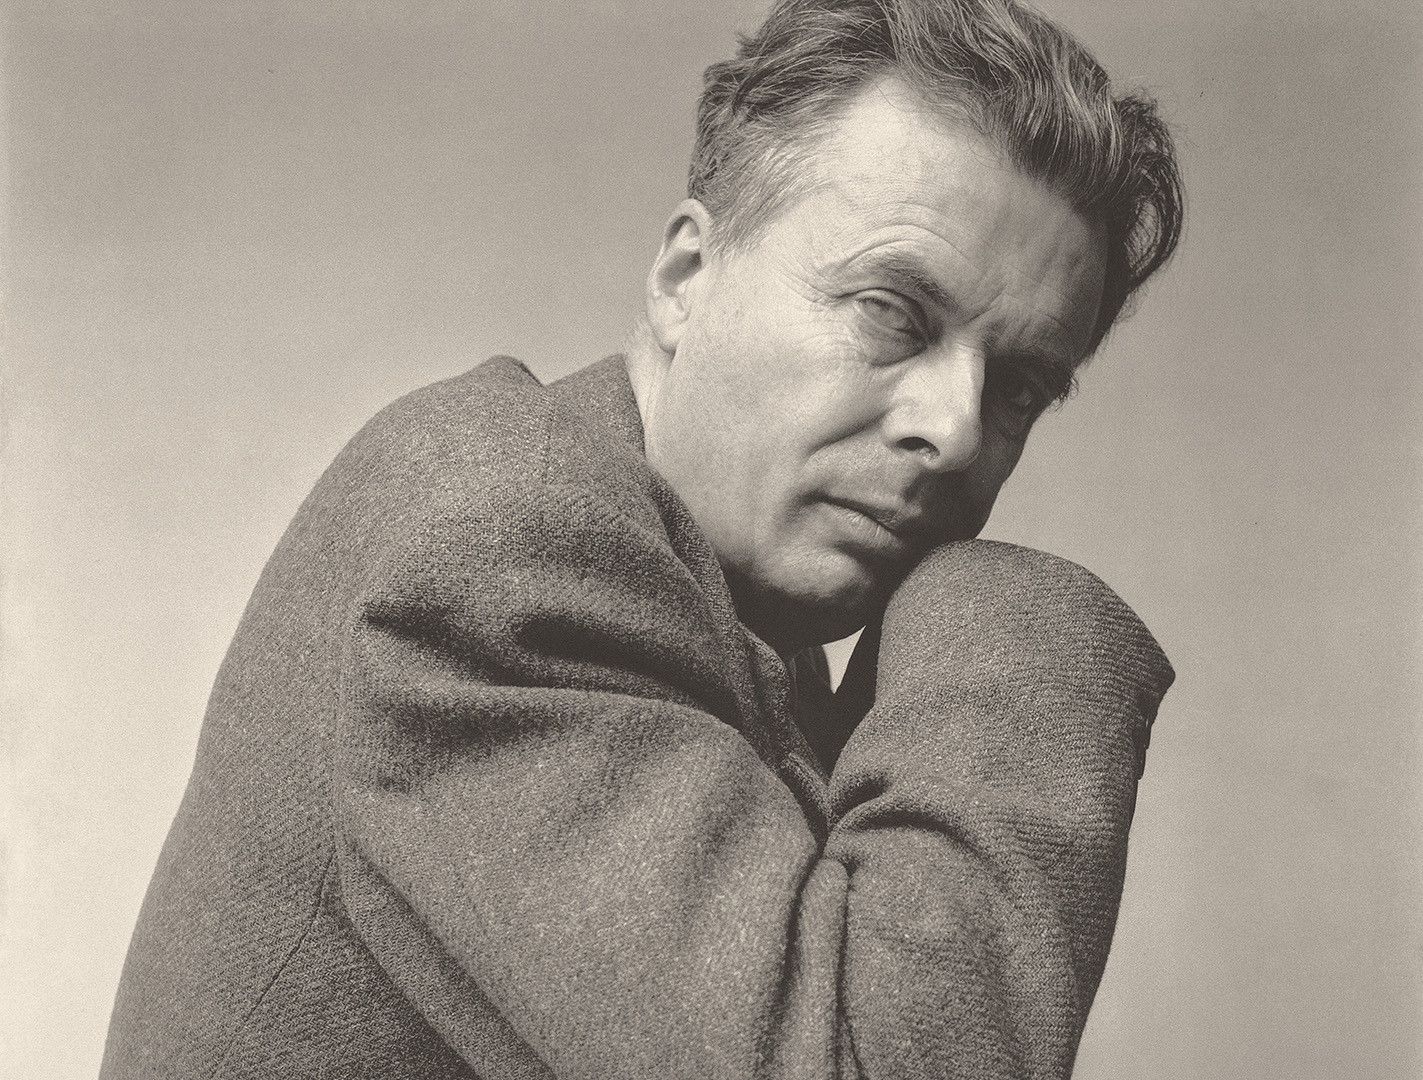 Irving Penn, Aldous Huxley, New York, 1950